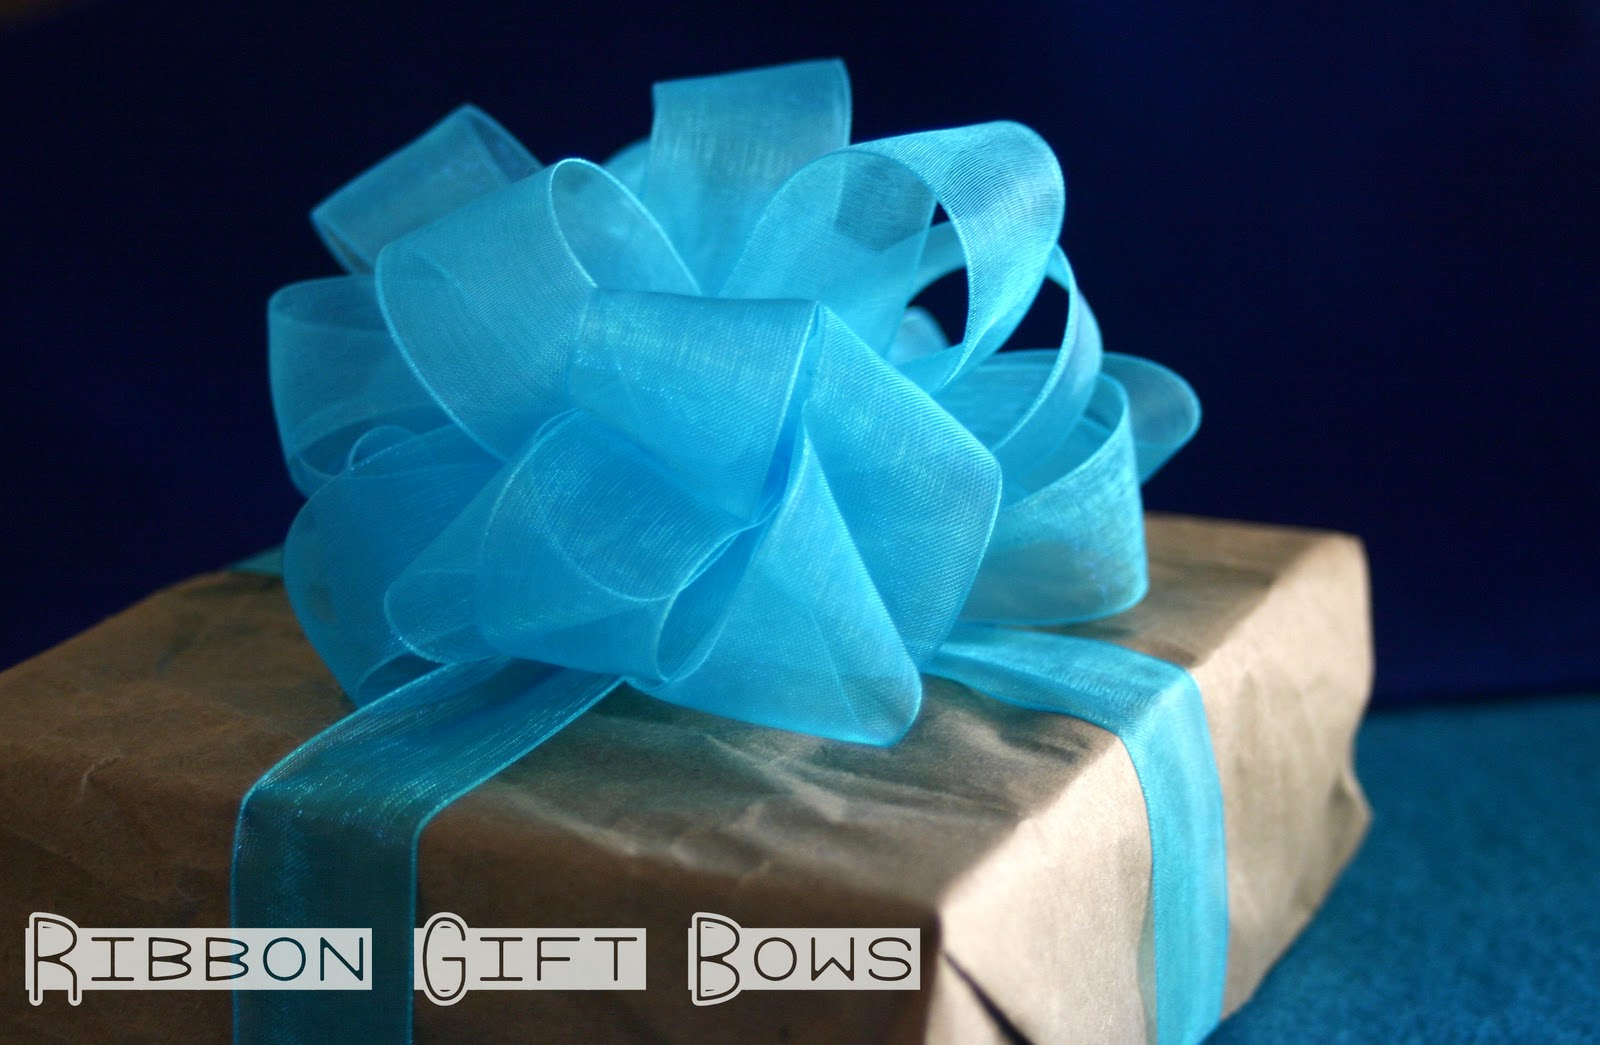 Ribbon Gift Bows Lines Across